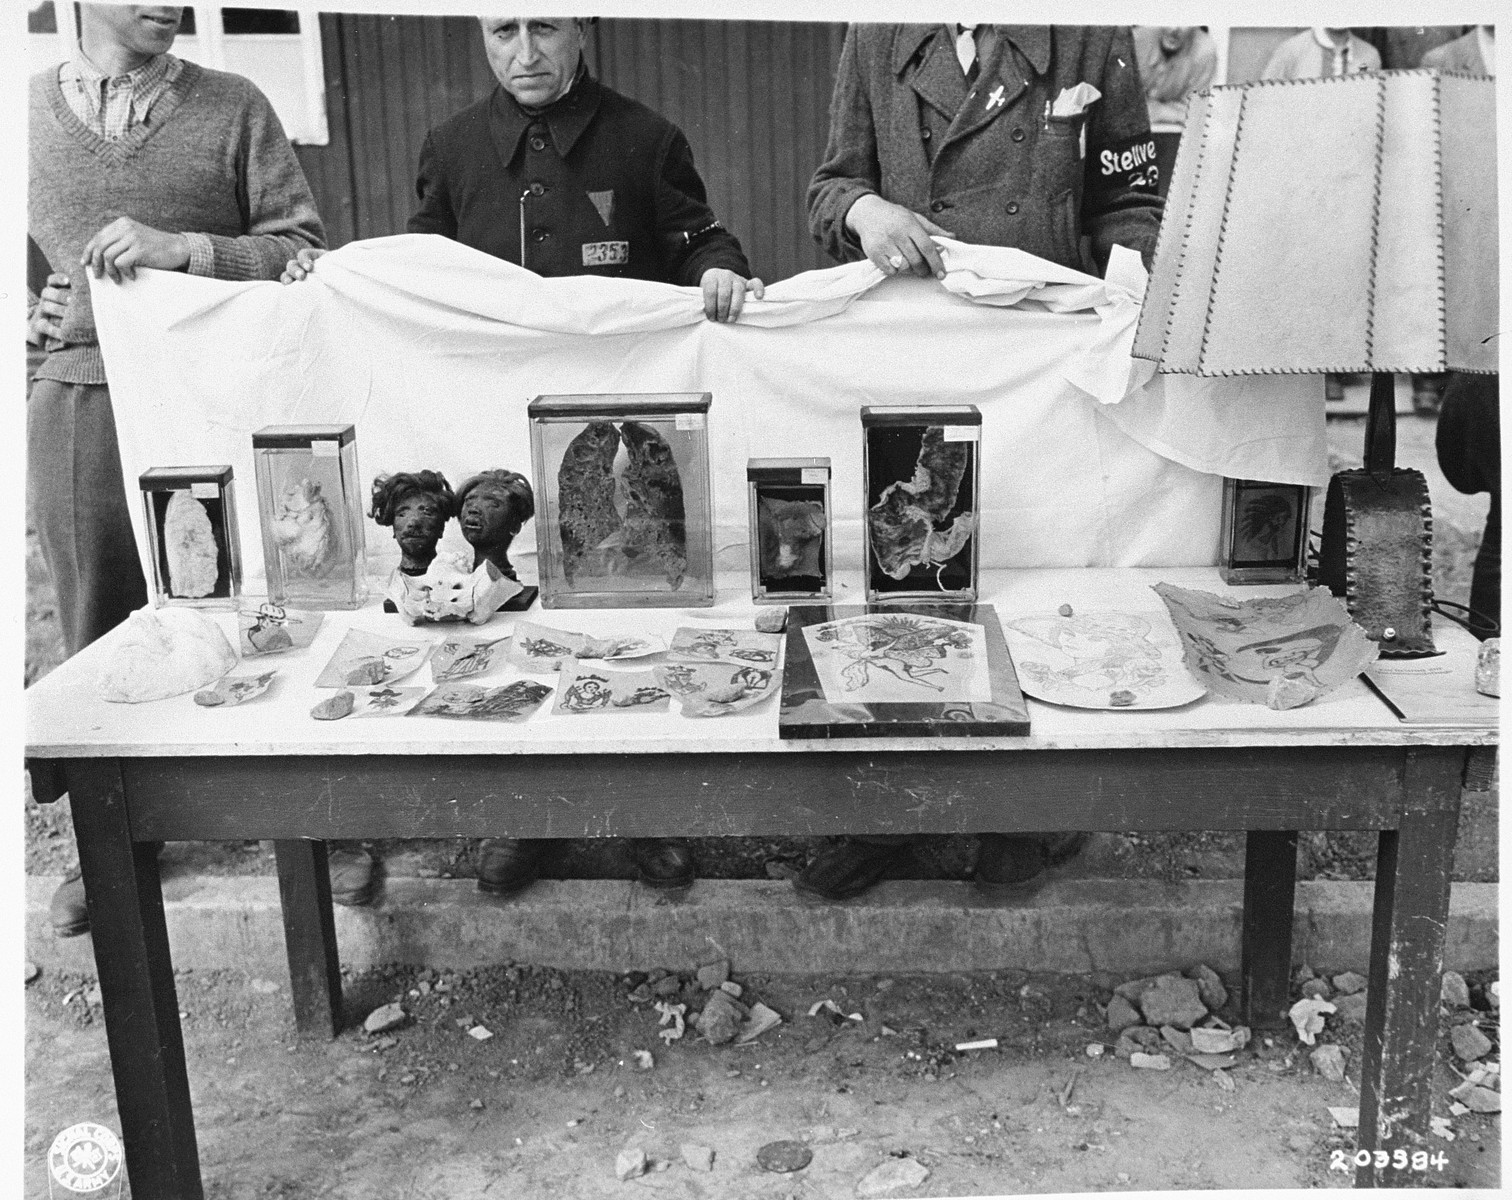 Buchenwald 16 April 1945. Collection of prisoners' internal organs including two human heads remains (upper left) and also examples of tattooed skins (foreground)